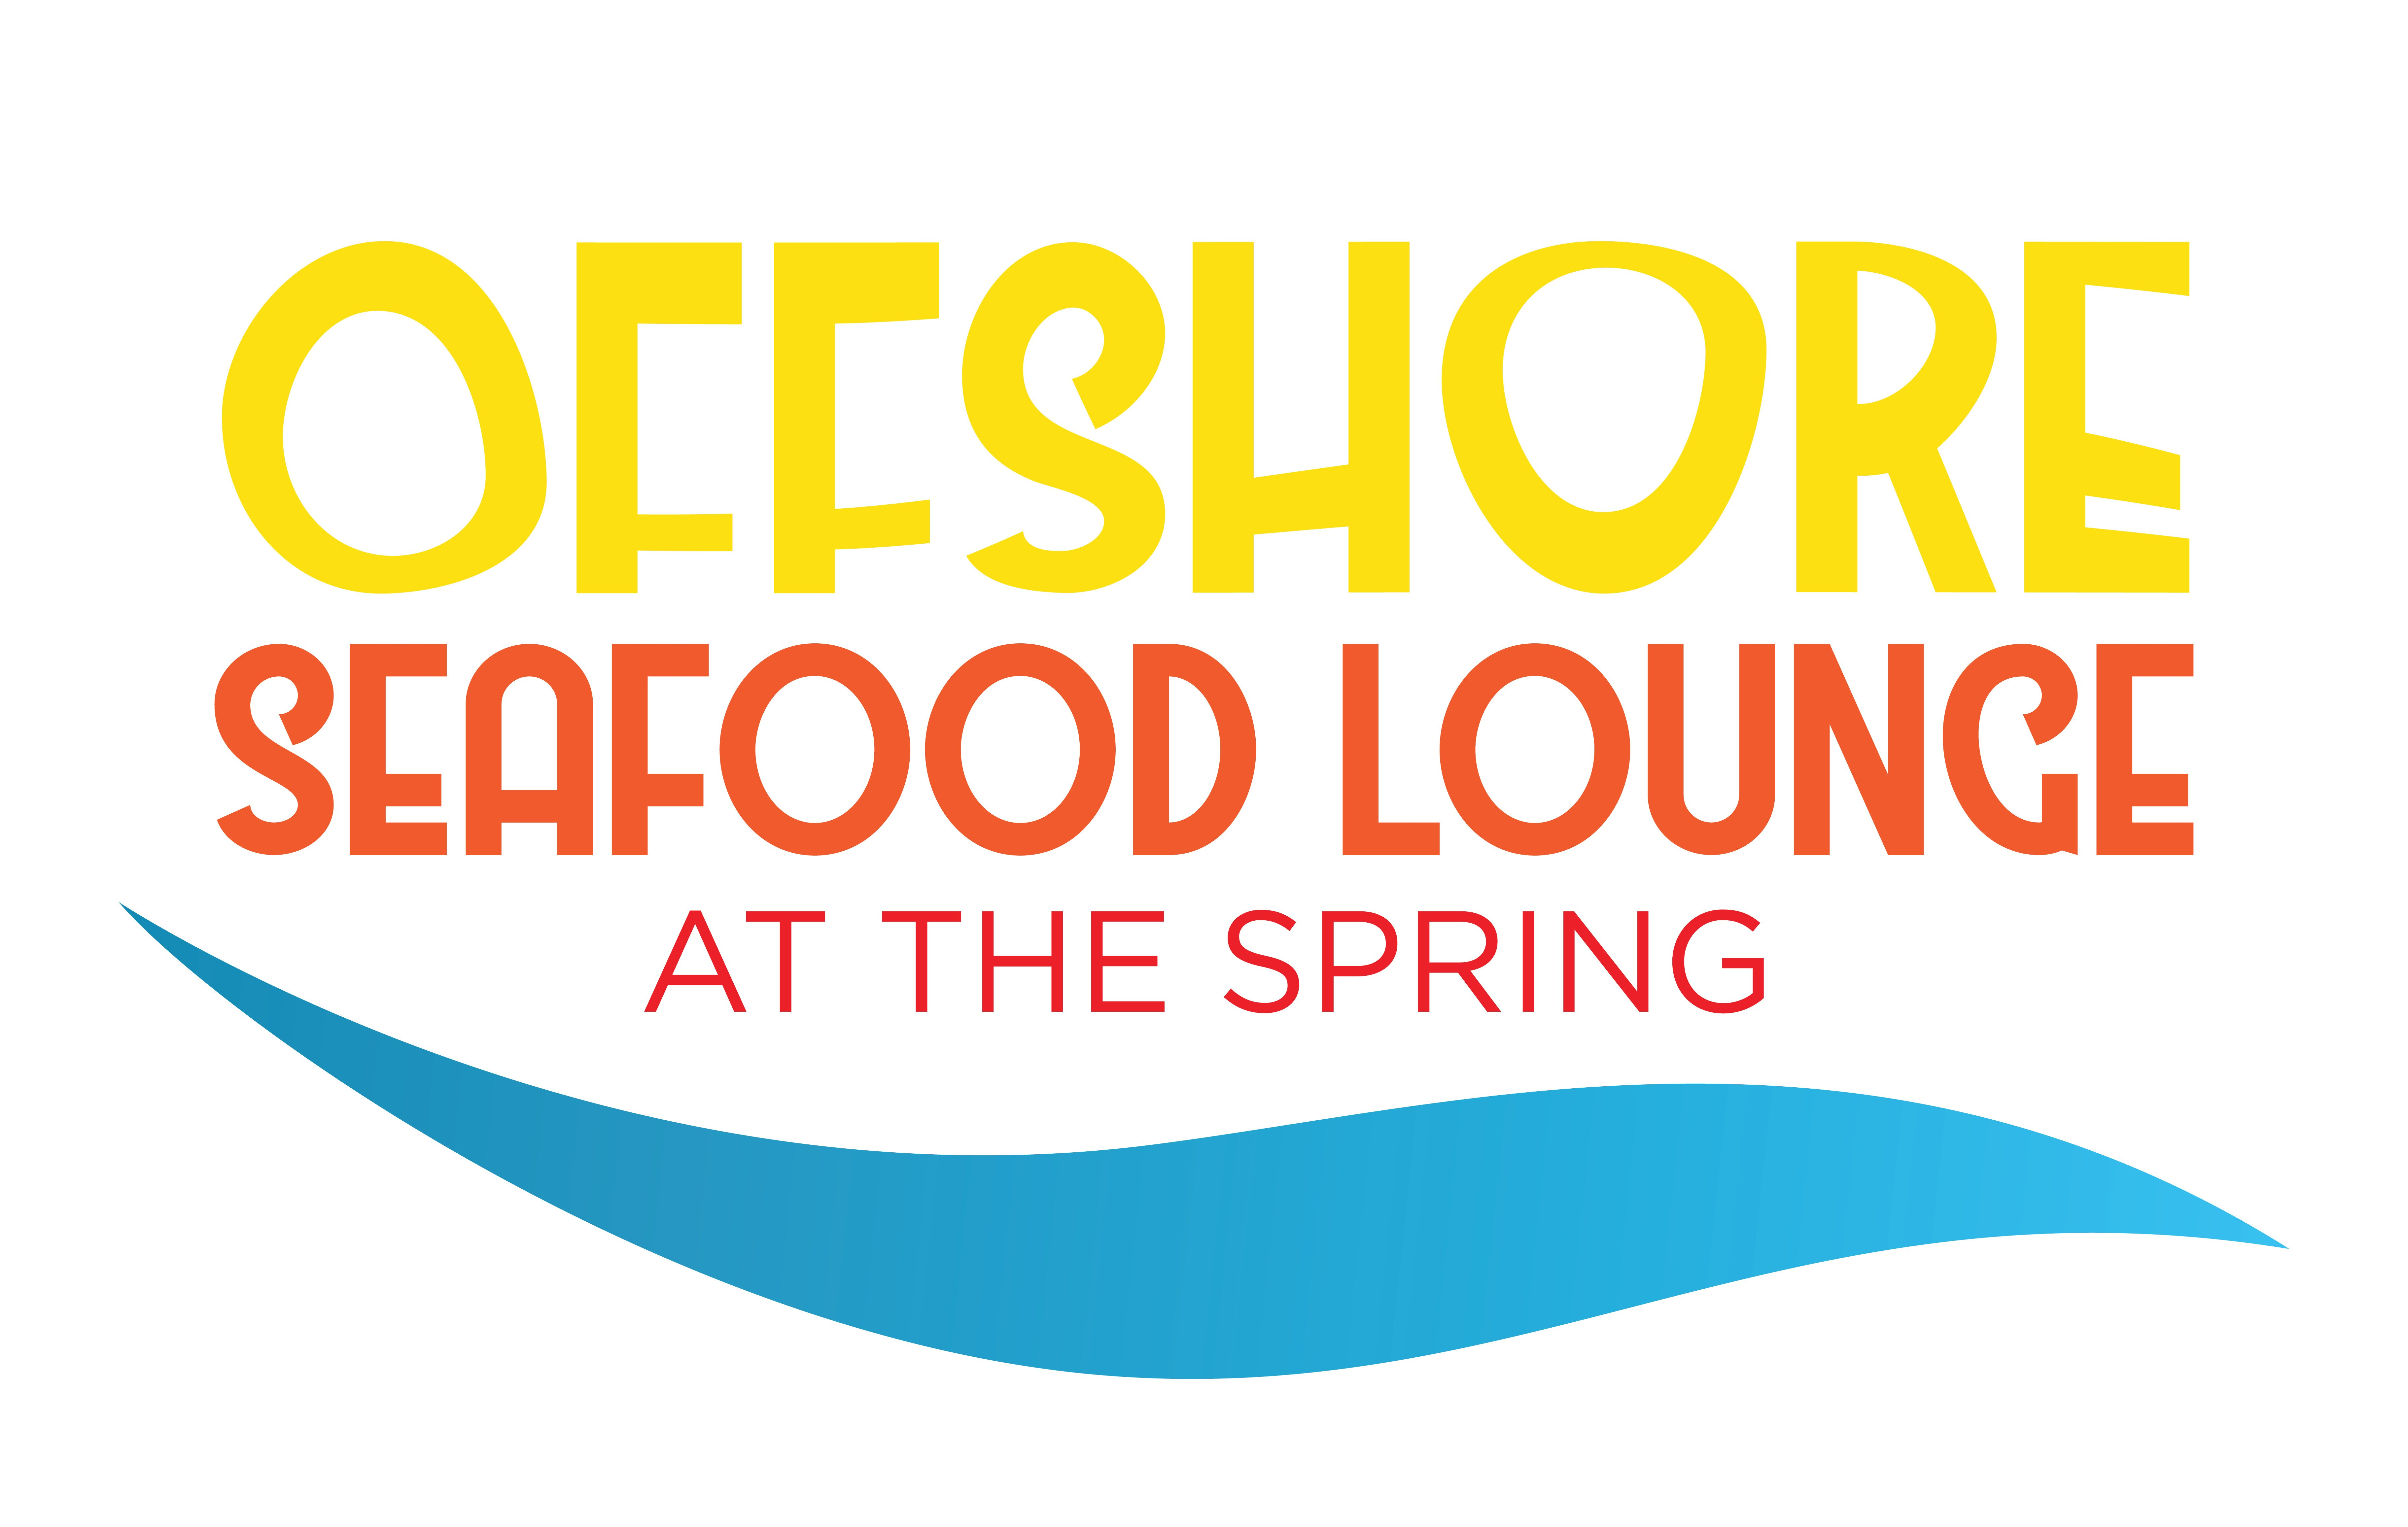 Offshore Seafood and Lounge